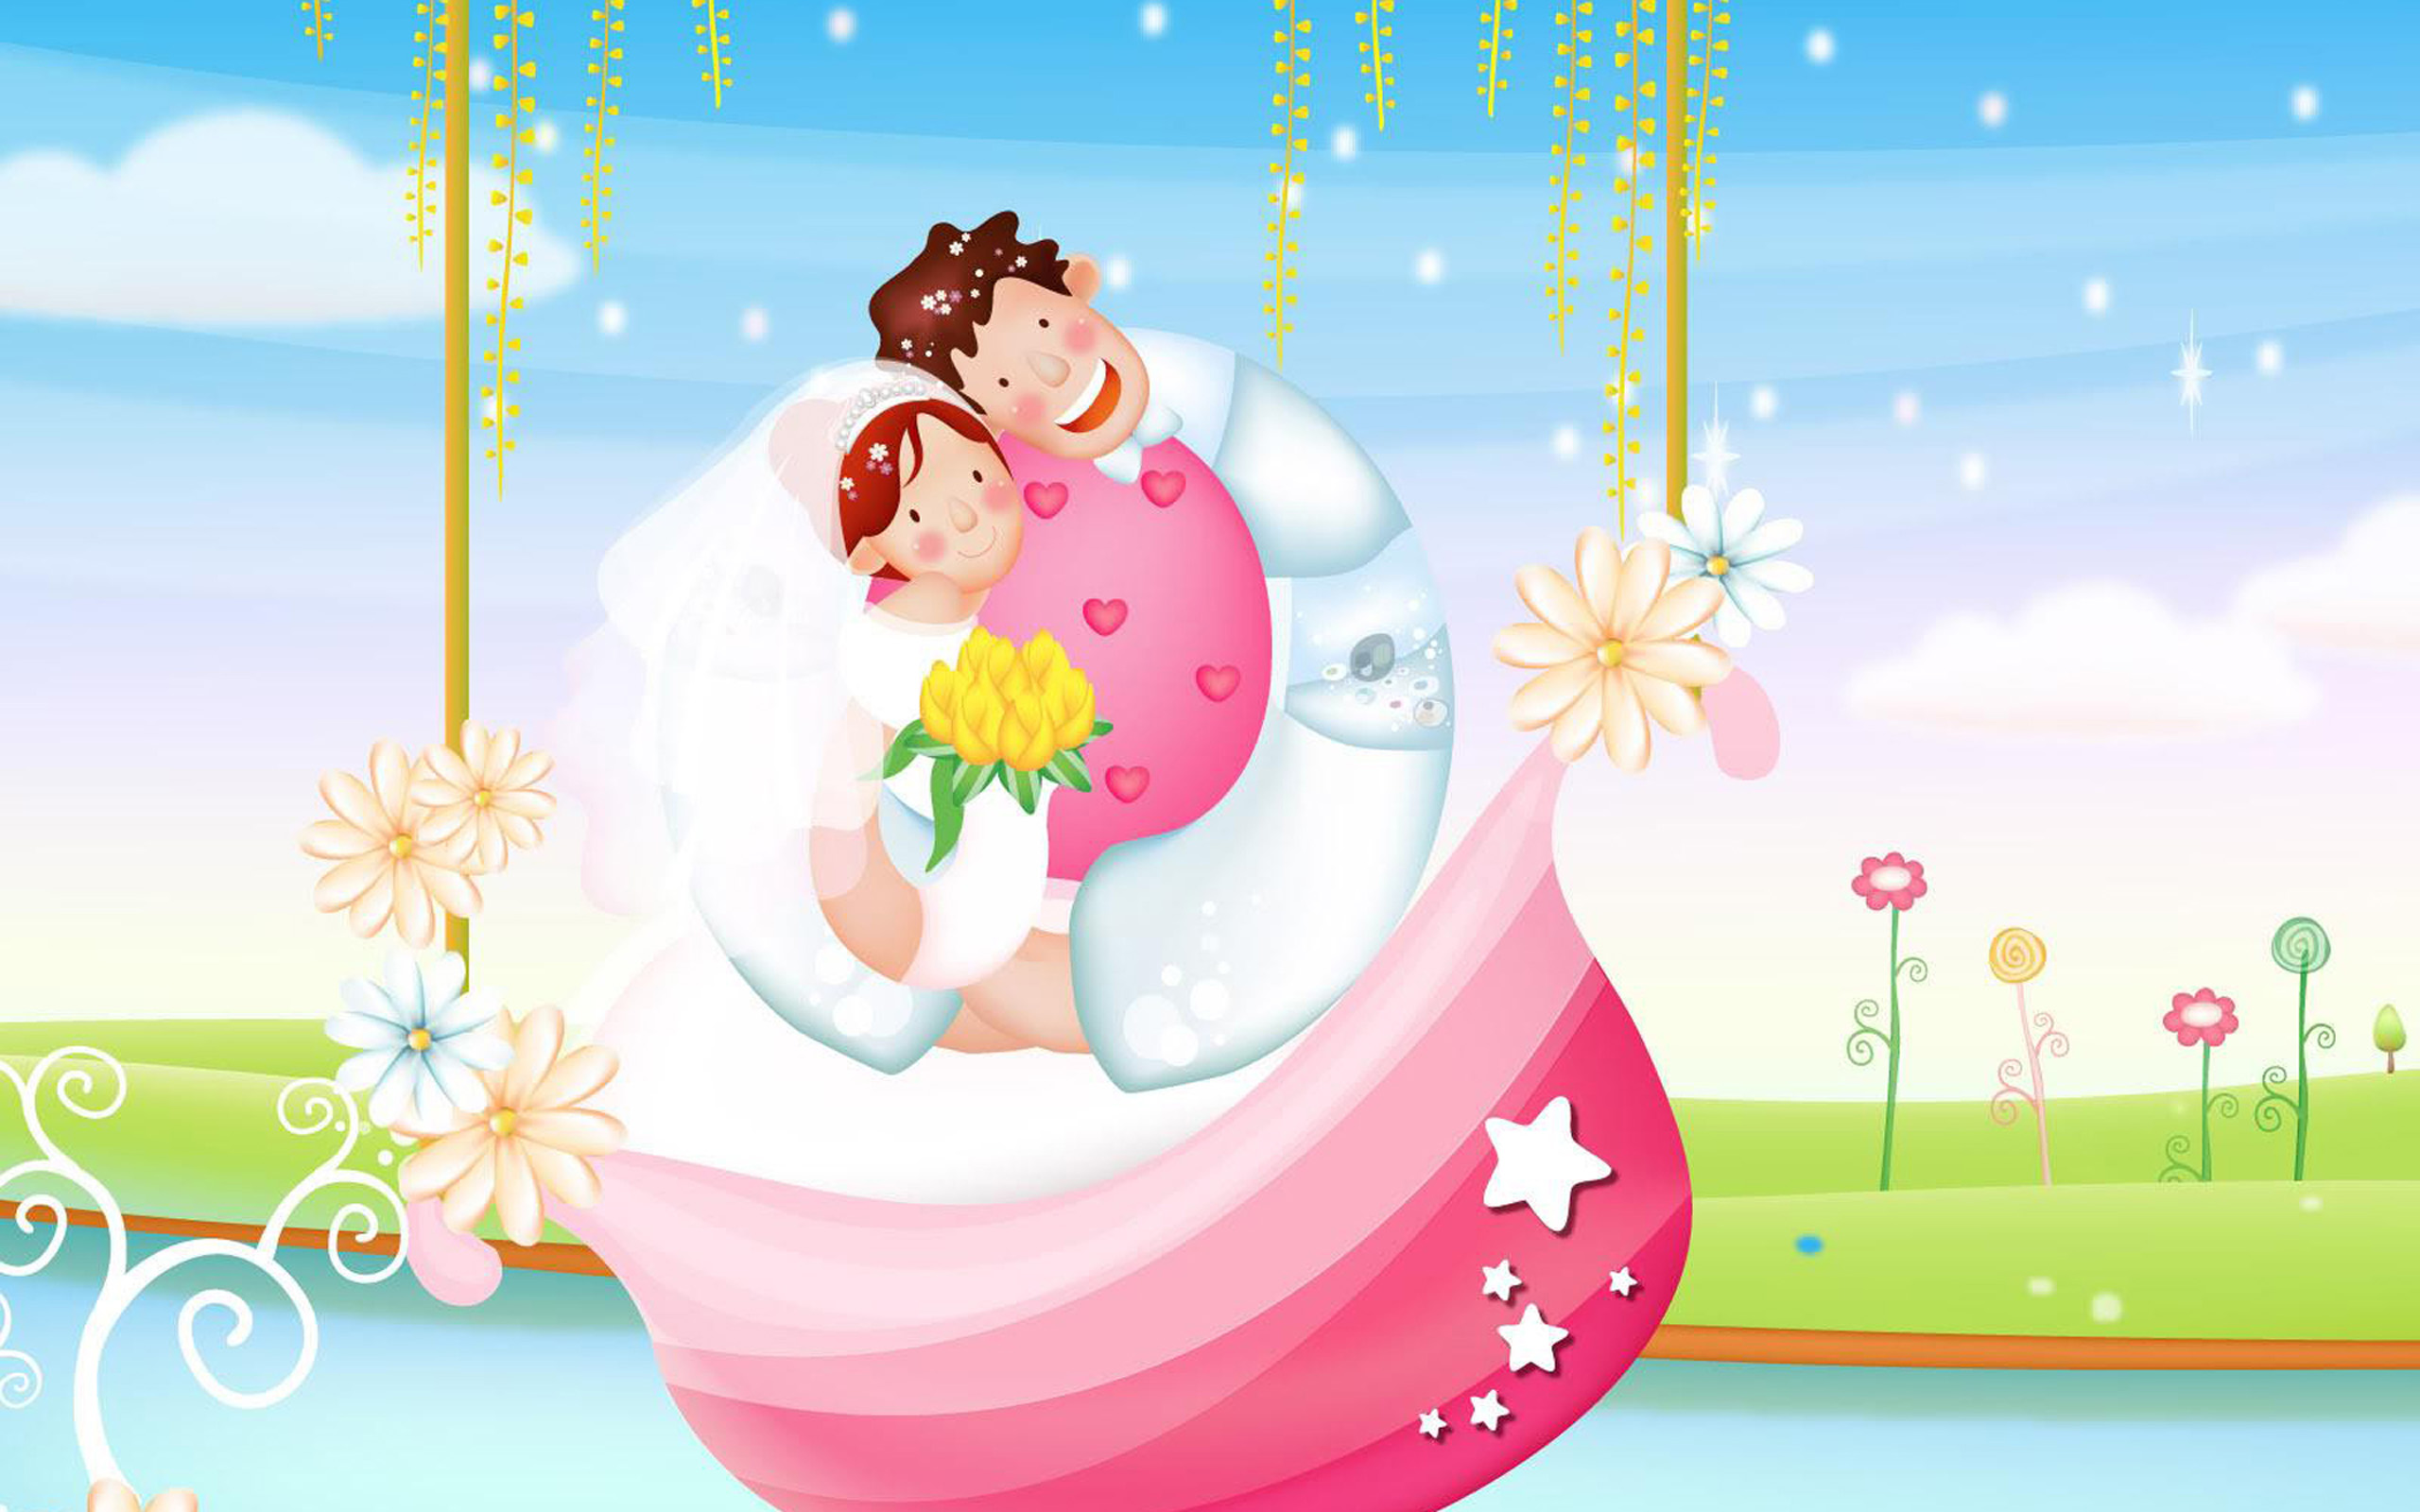 Cute Cartoon Couple Wallpapers For Mobile Free Love Couple Cartoon Pictures Download Free Clip Art